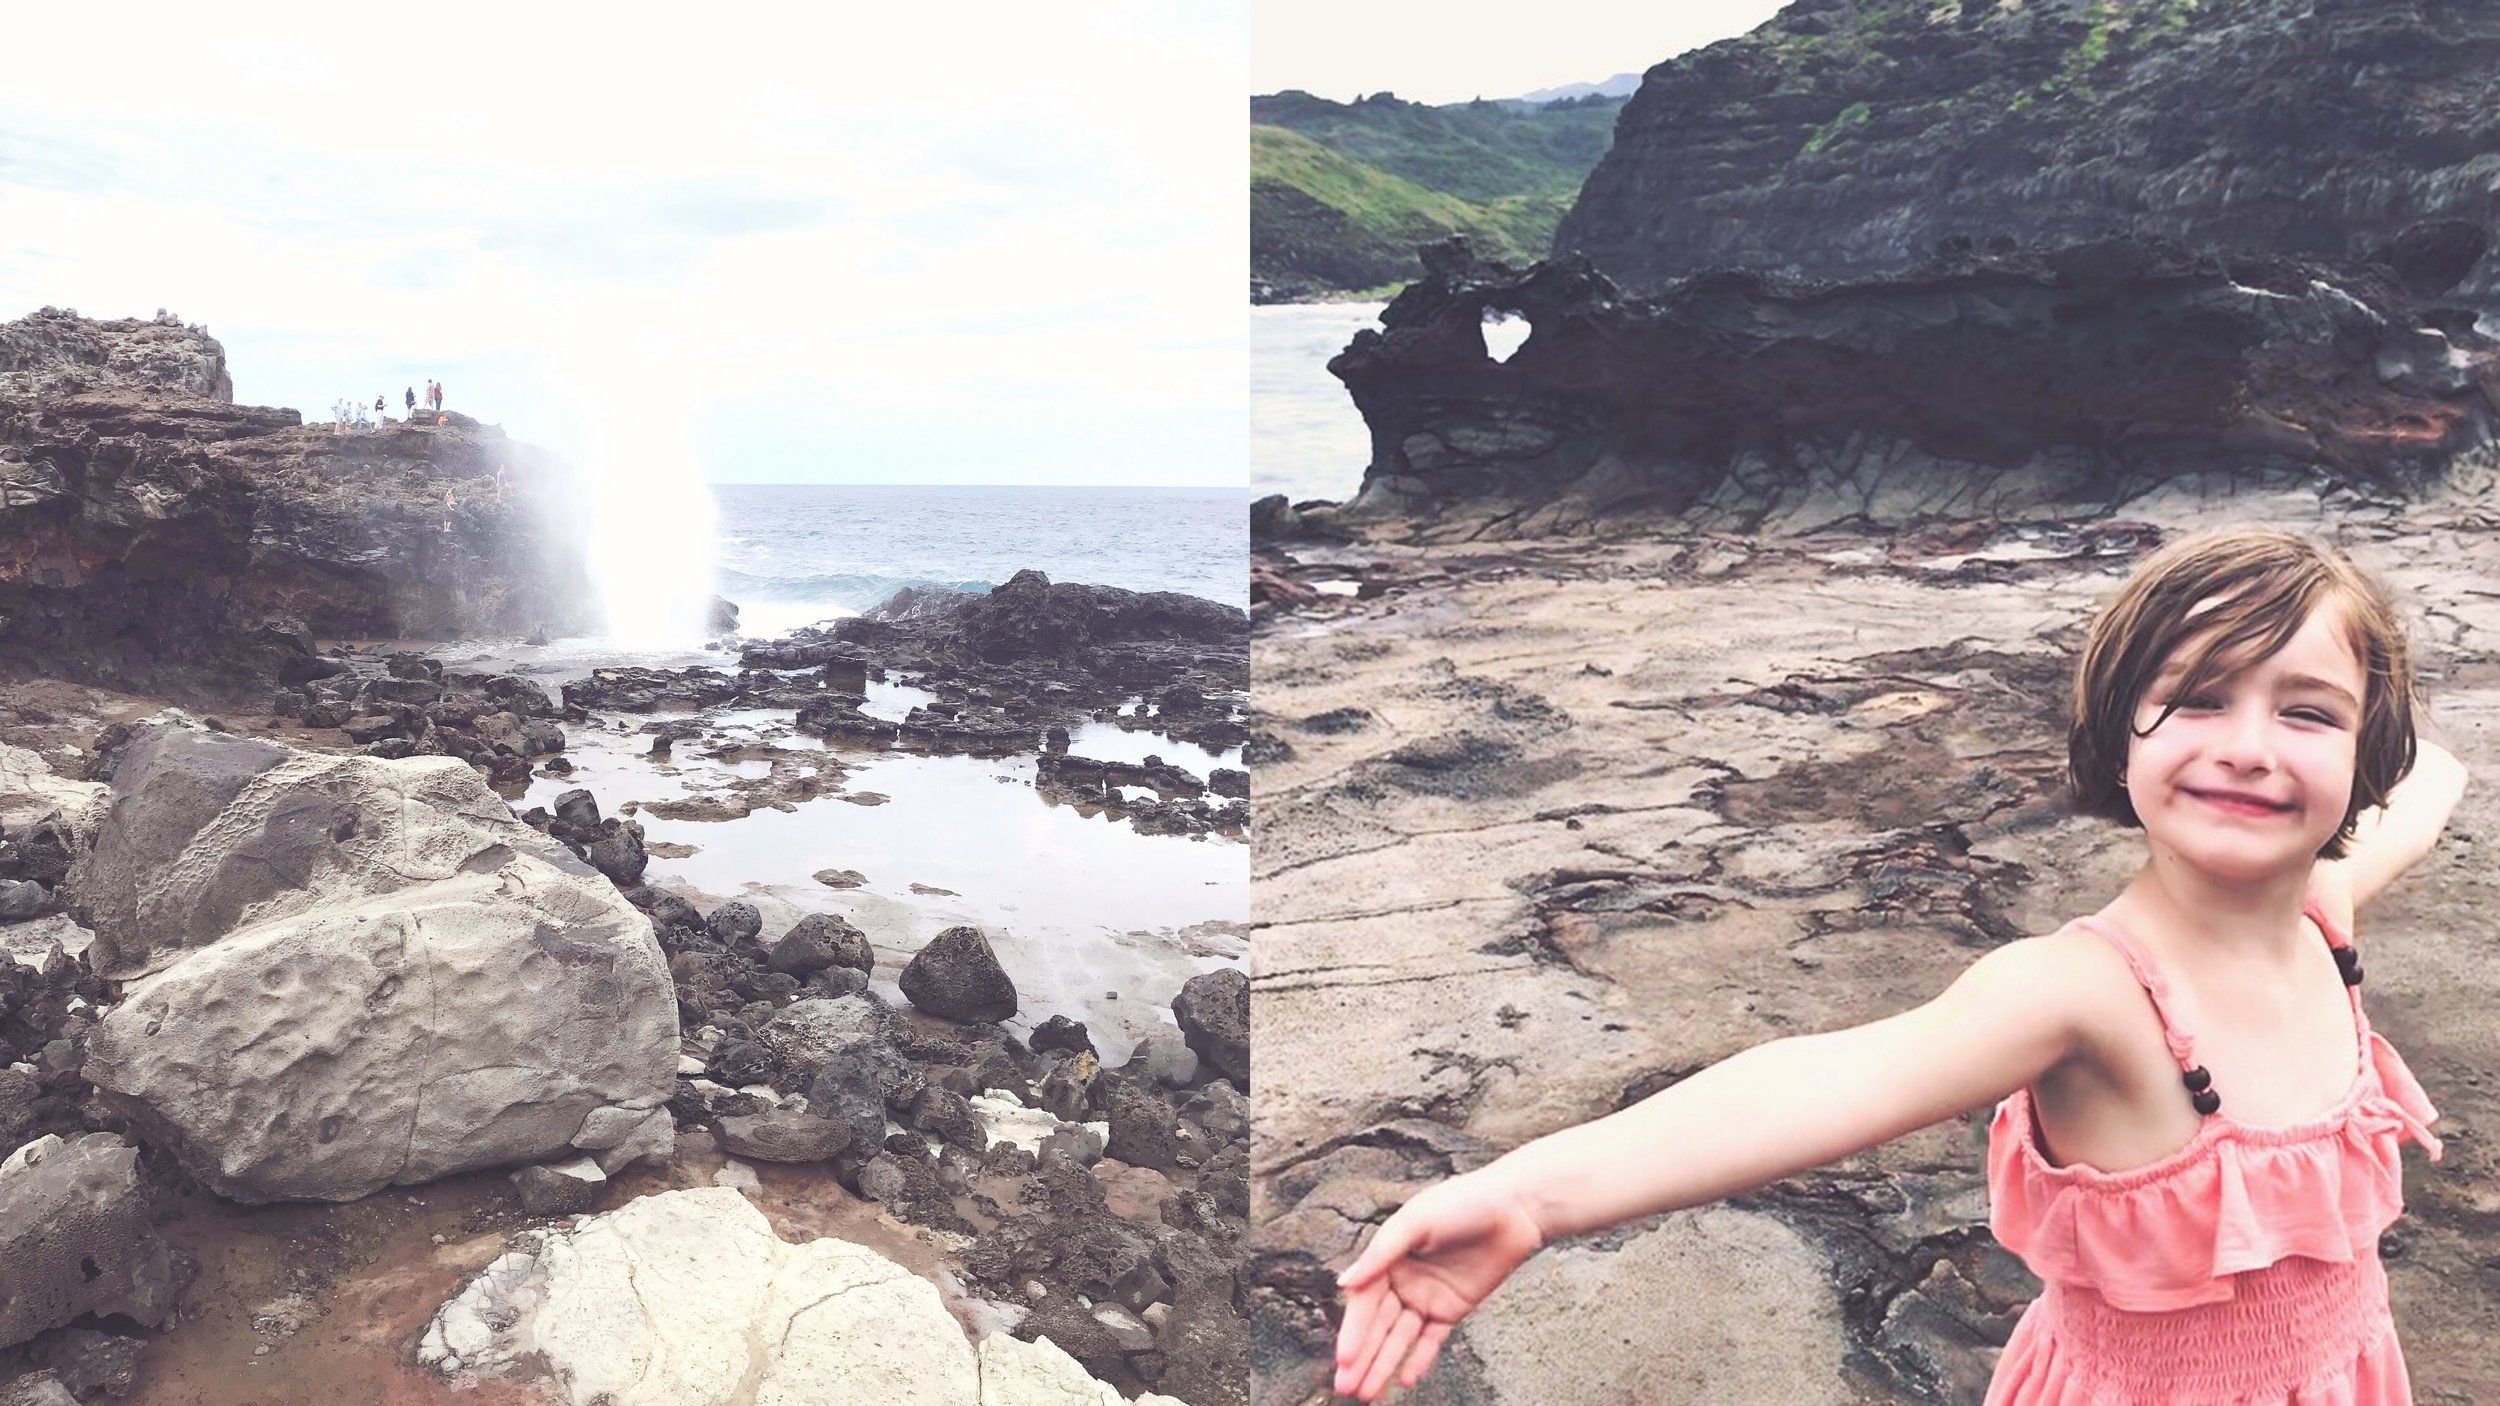 Nakalele blowhole and the heart rock.